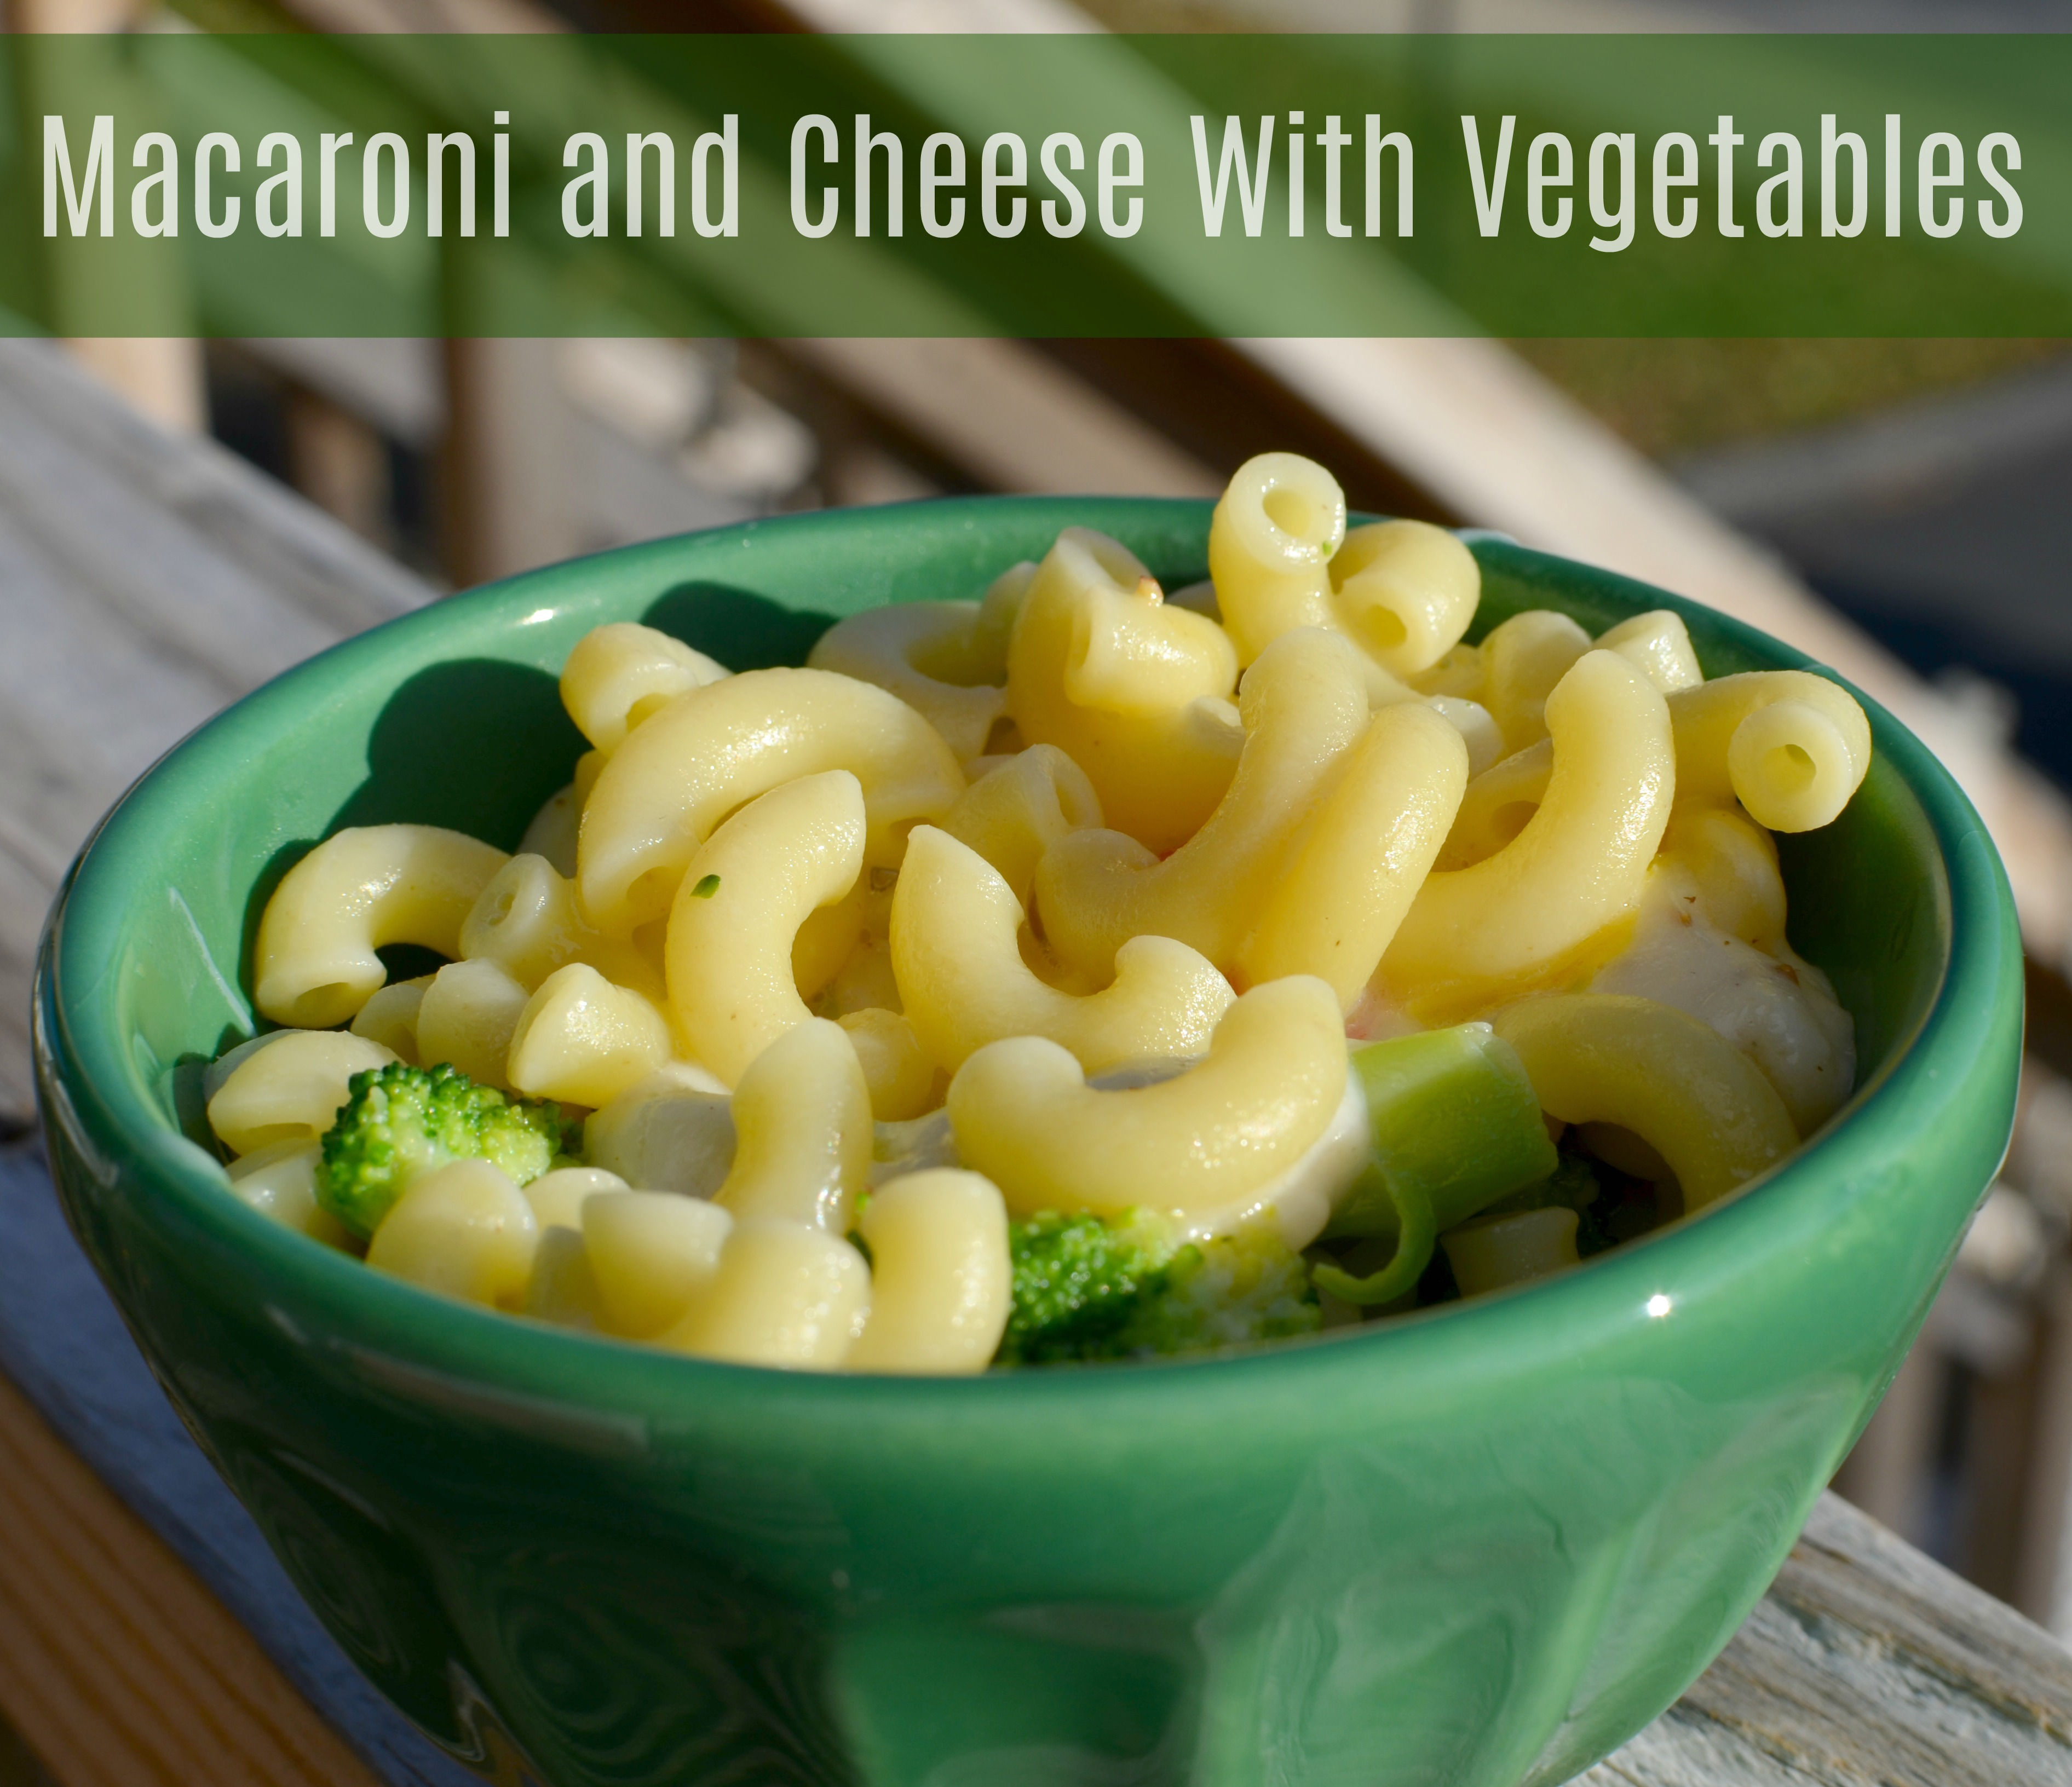 Macaroni And Cheese With Veggies And More